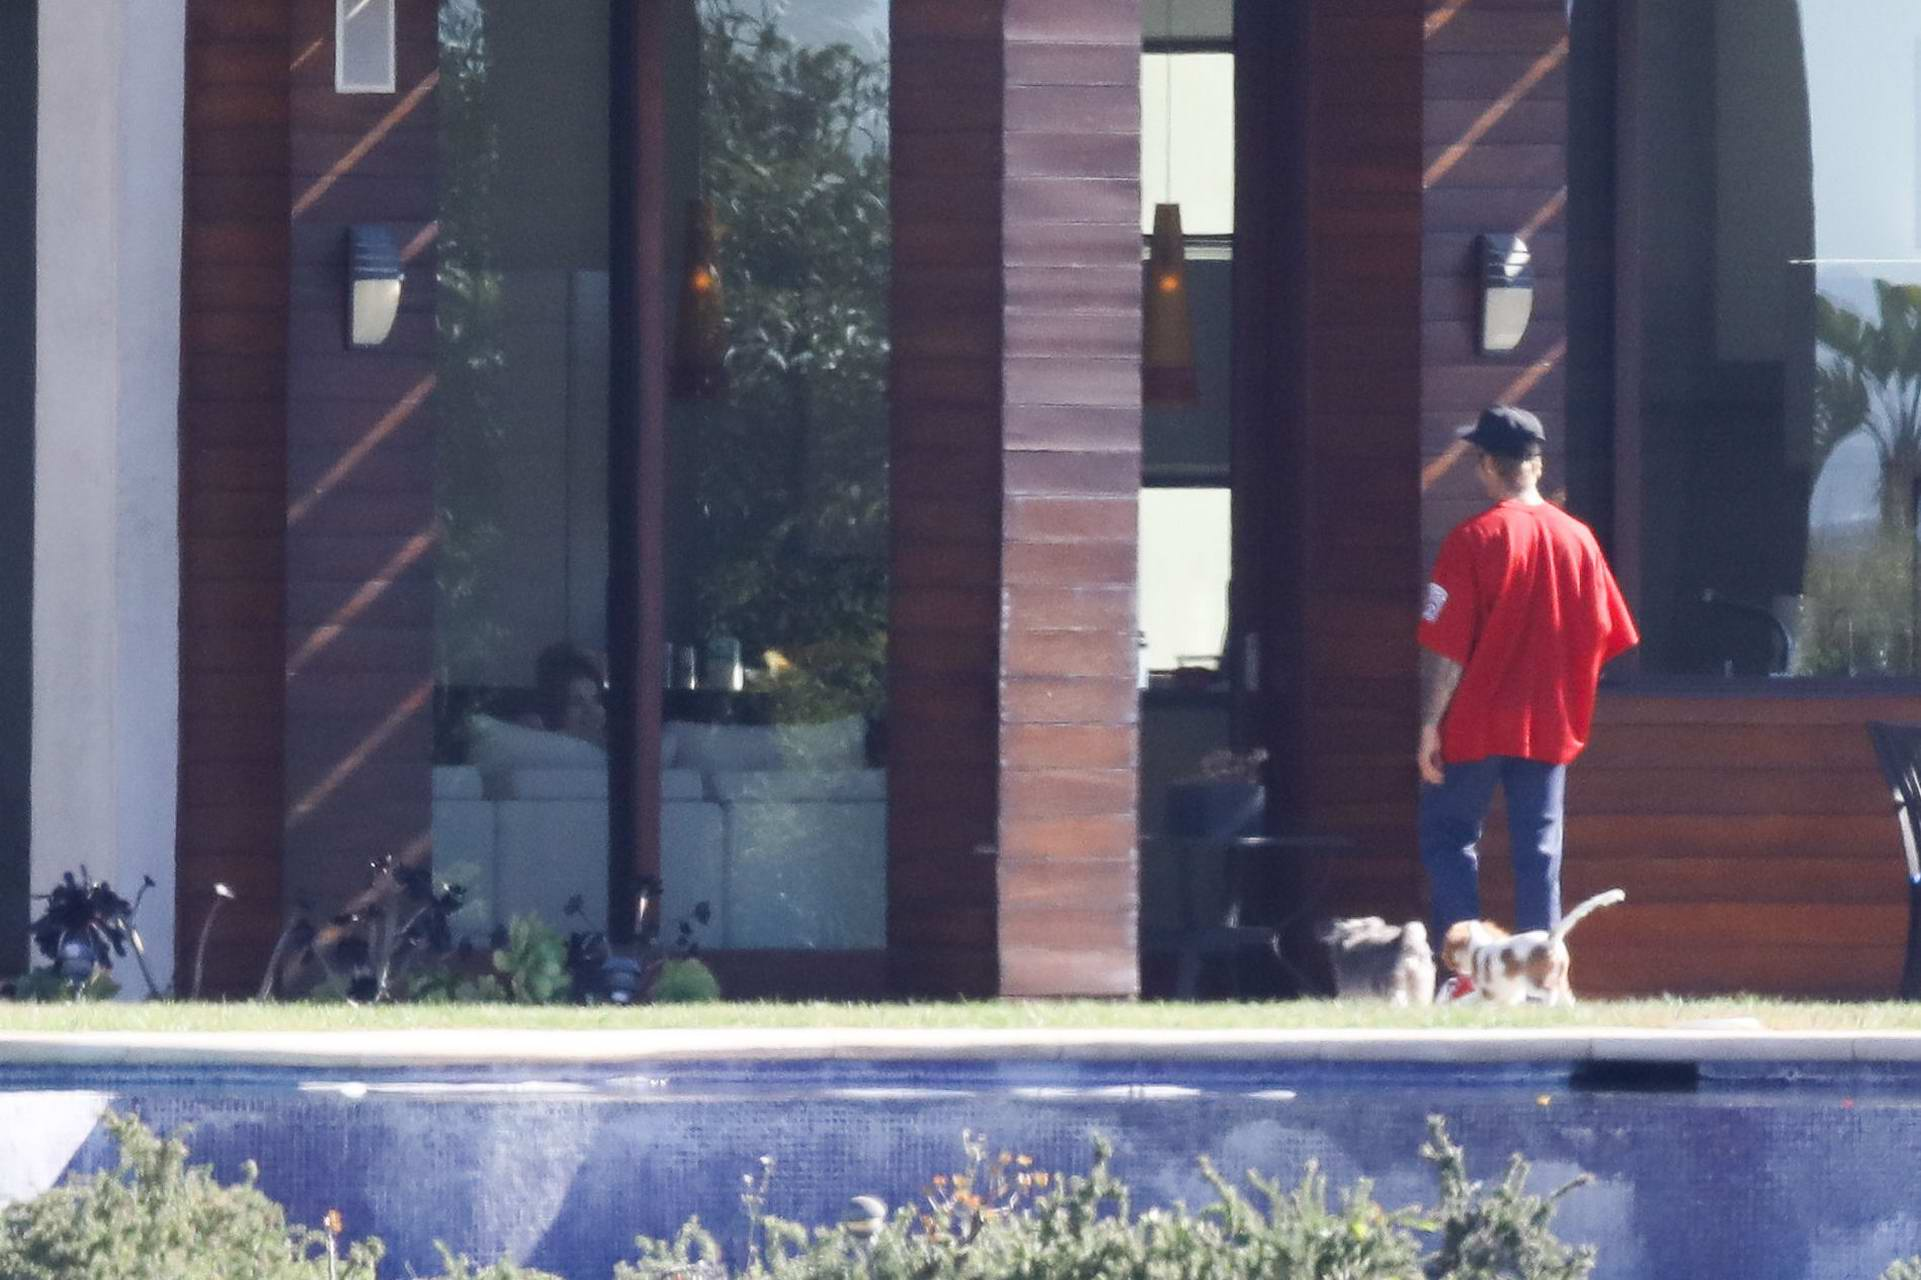 Selena Gomez spends the weekend with Justin Bieber at a rental house in Los Angeles